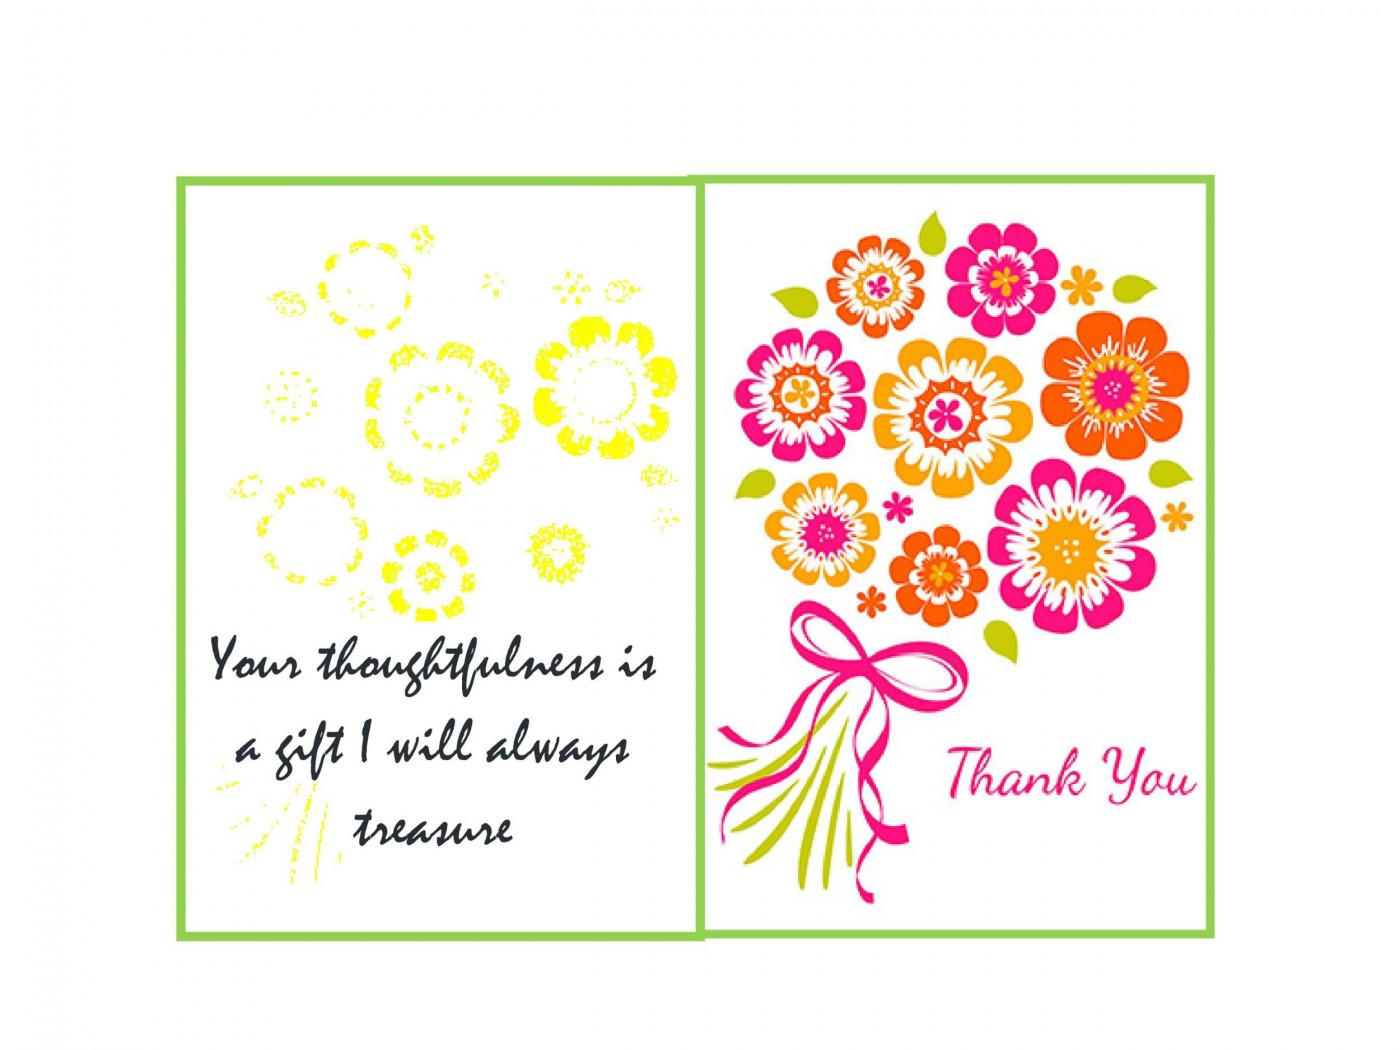 007 Marvelou Thank You Card Template Inspiration  Wedding Busines Word Free1400